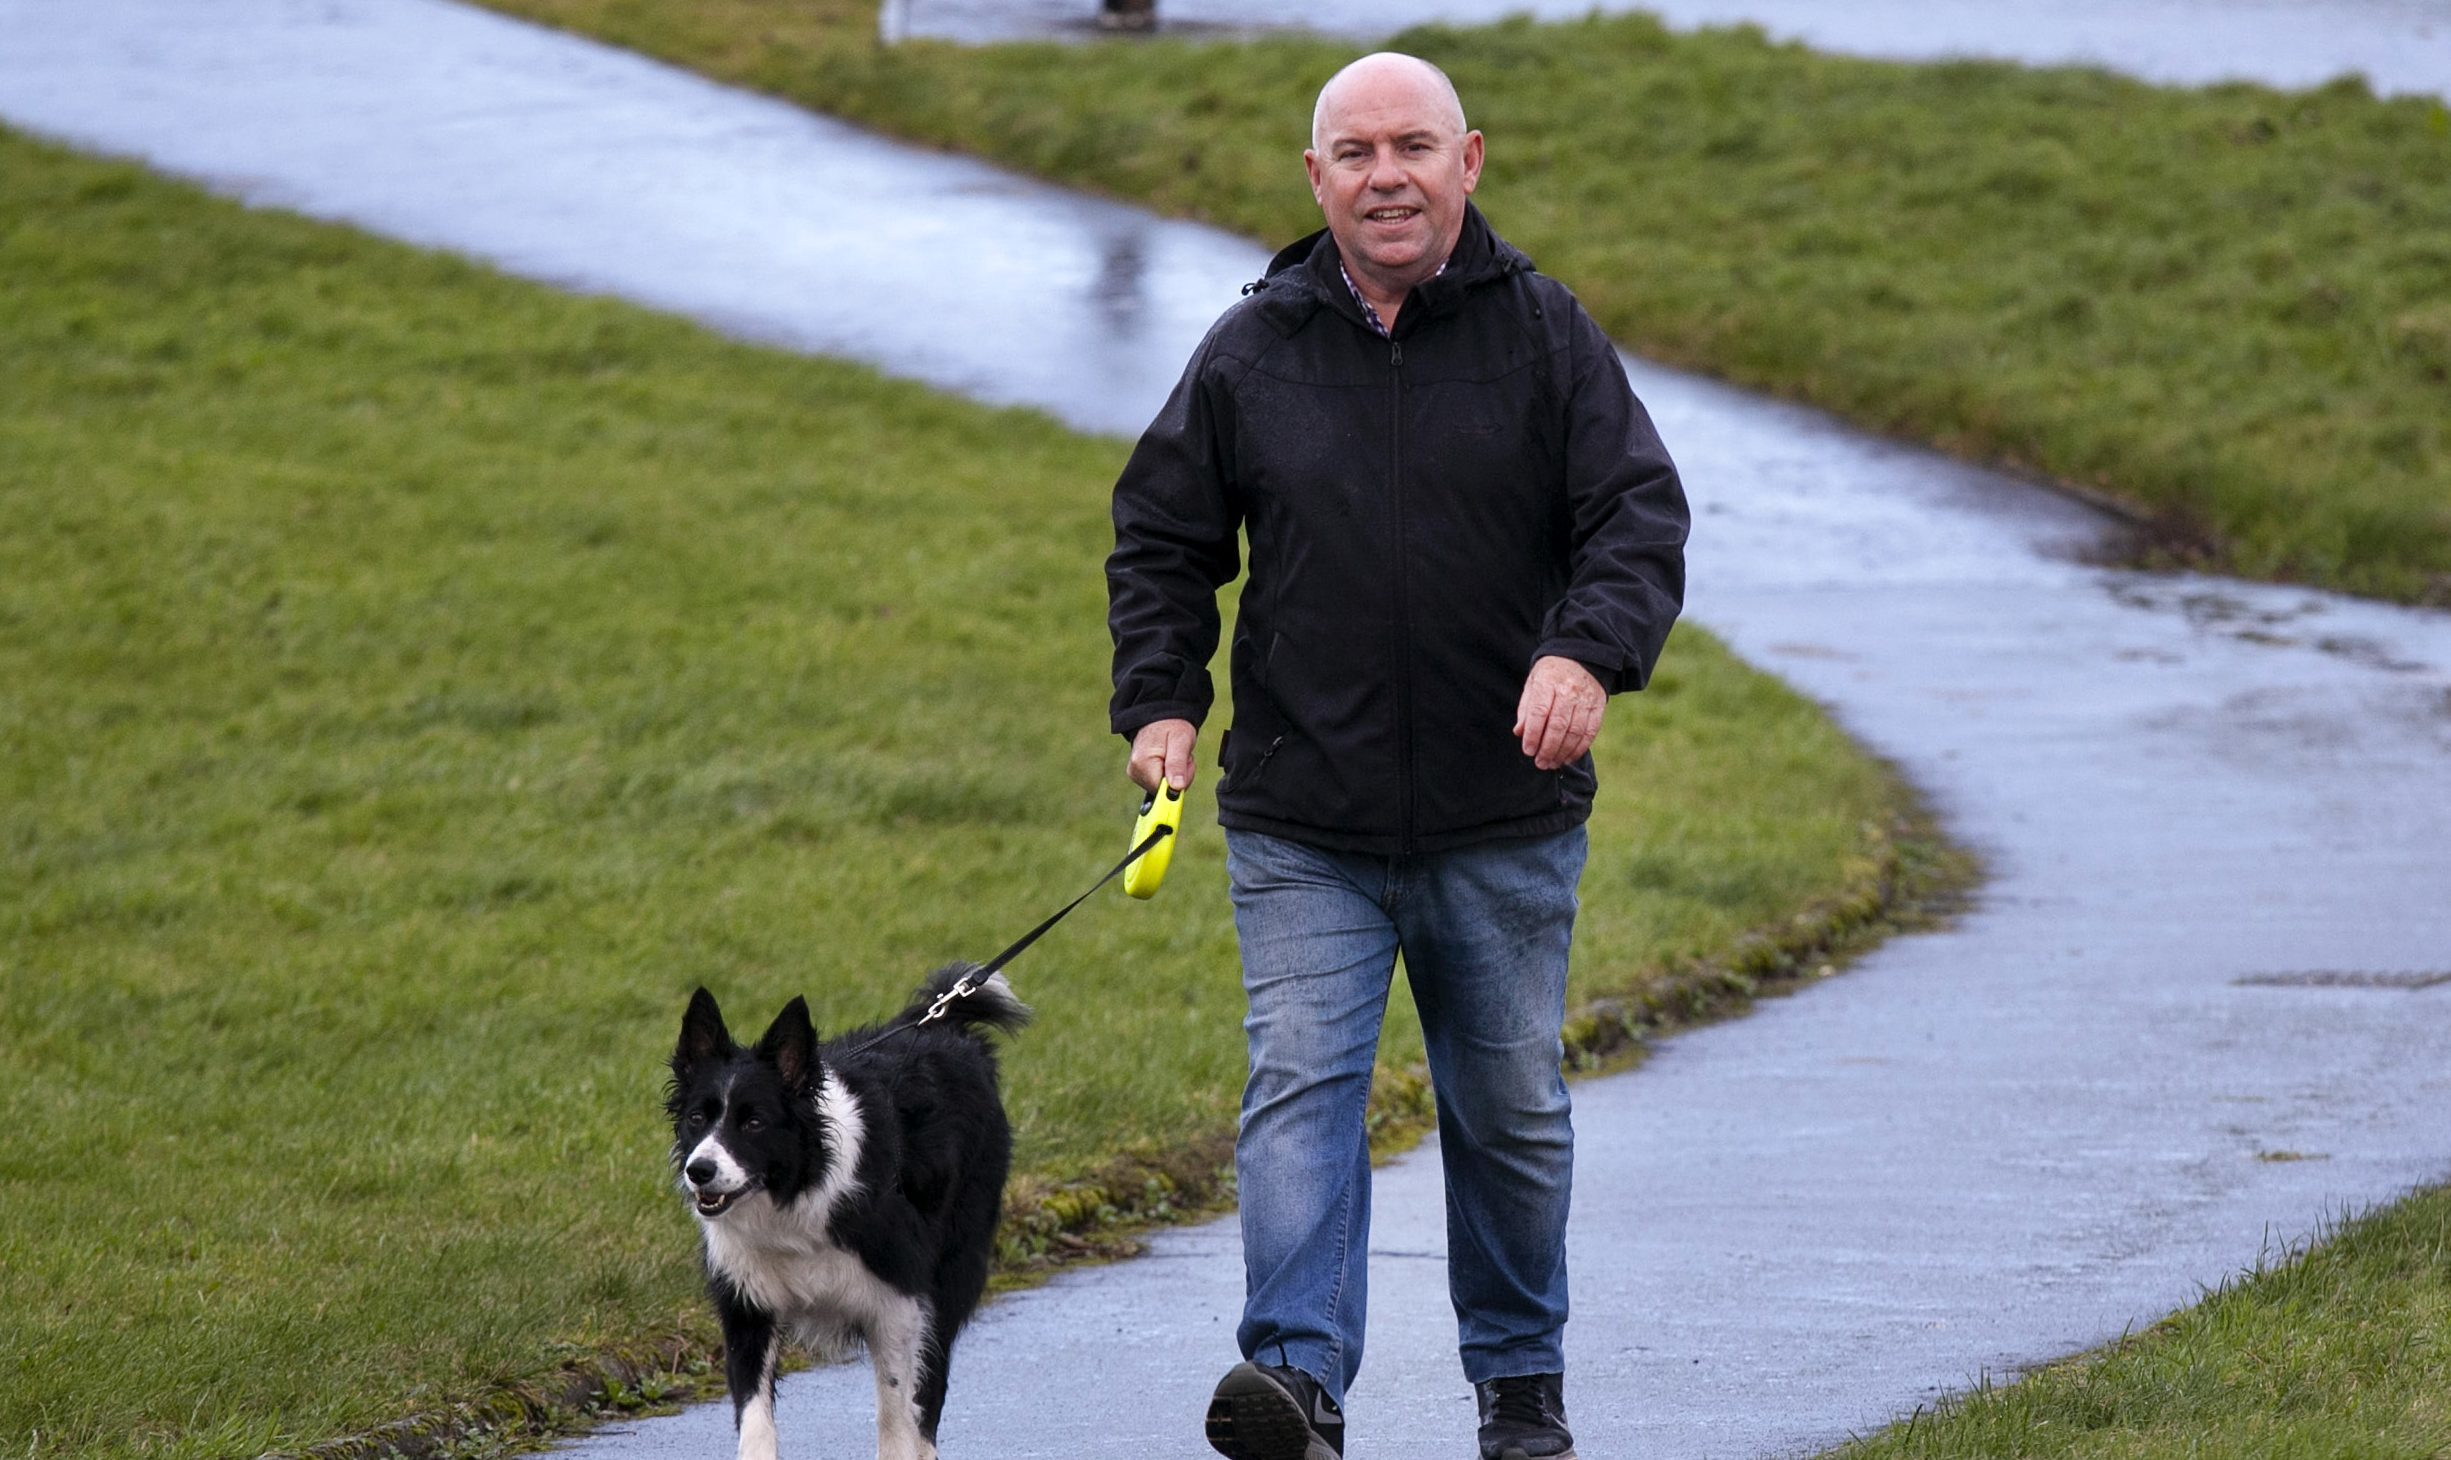 David Halcrow out walking his dog 3 weeks after a partial knee replacement (Alistair Linford)